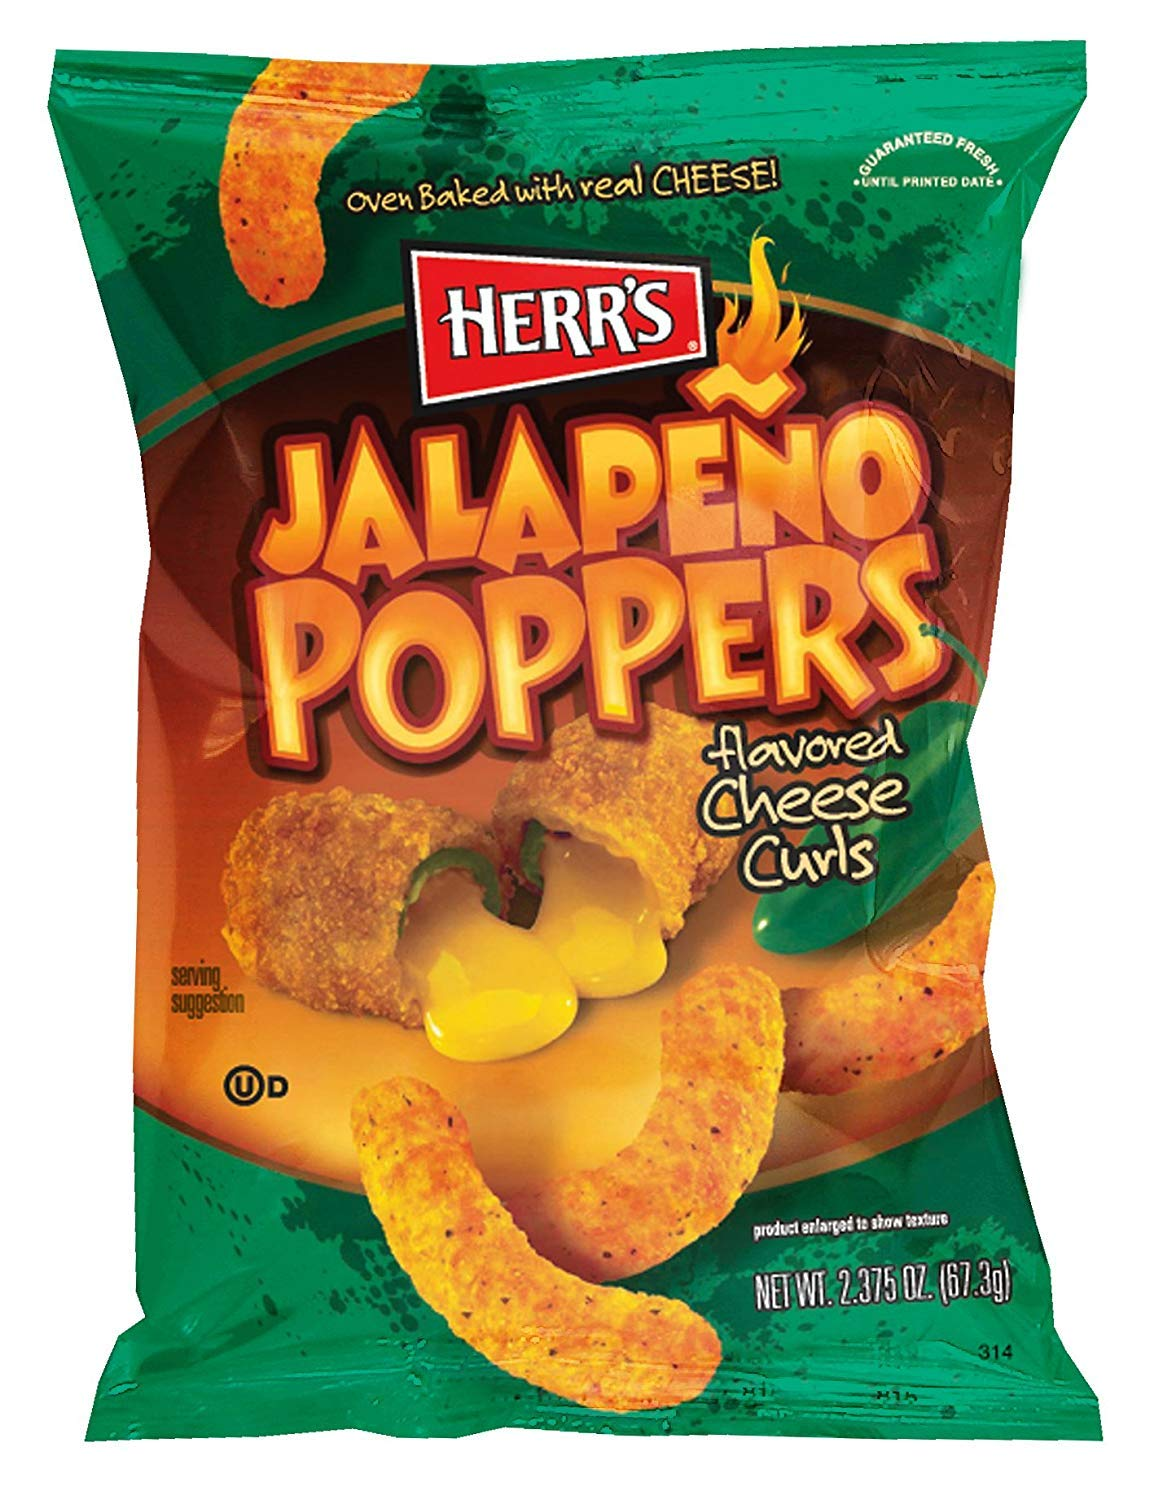 Herr's Jalapeno Cheese Curls, 2.375 Ounce (Pack of 20) (Pack of 60) by Herr's (Image #1)